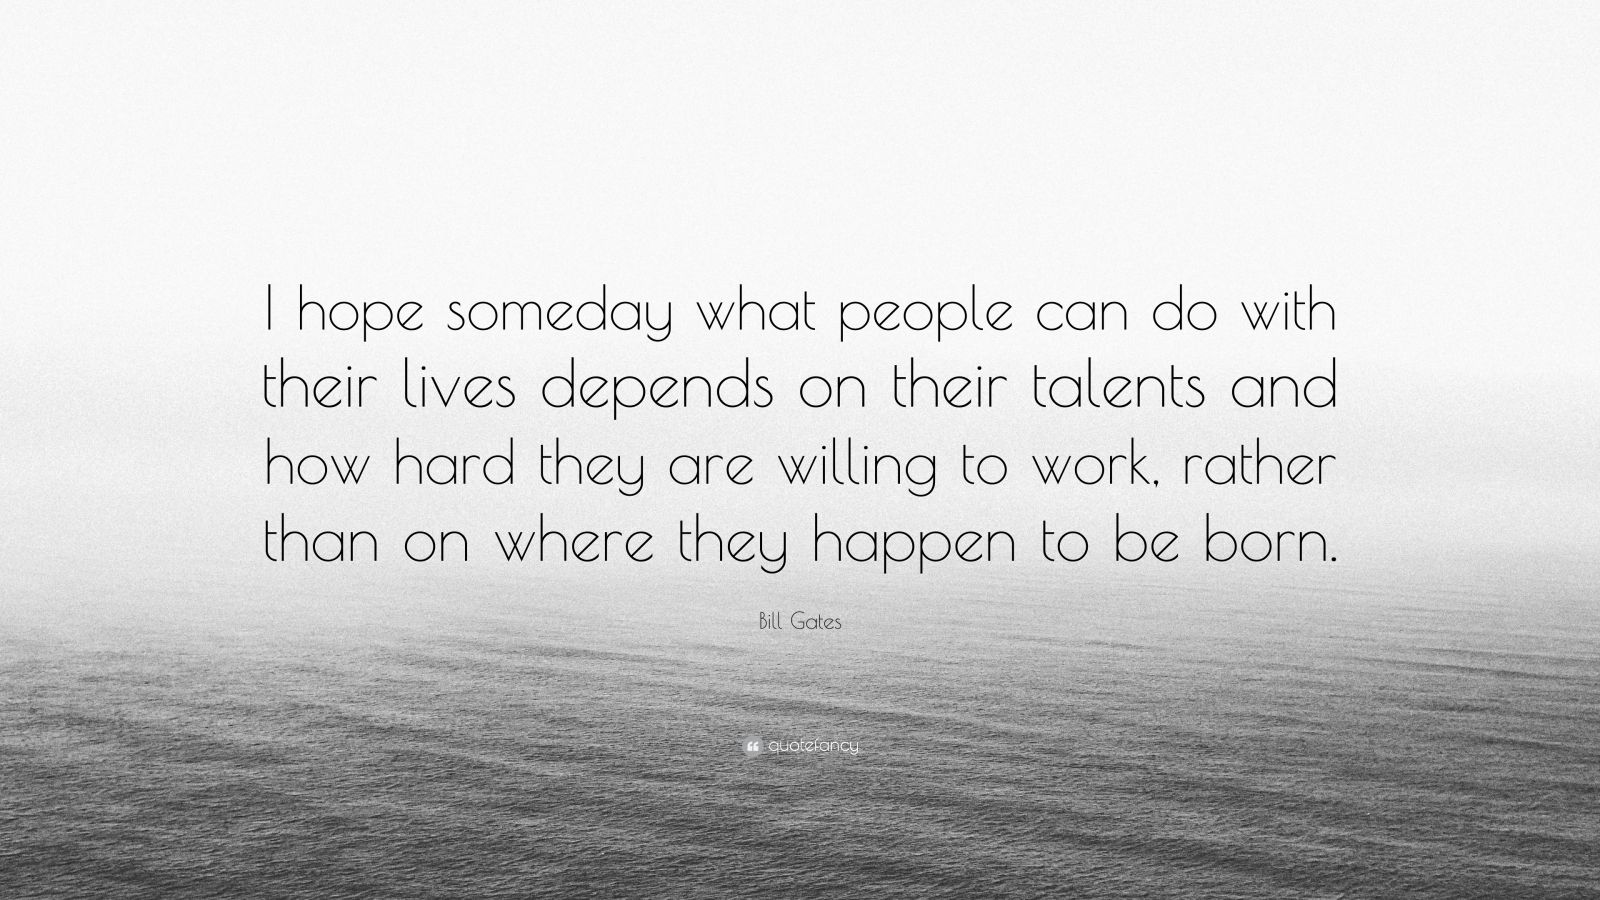 """Bill Gates Quote: """"I hope someday what people can do with their lives depends on their talents and how hard they are willing to work, rather than on where they happen to be born."""""""